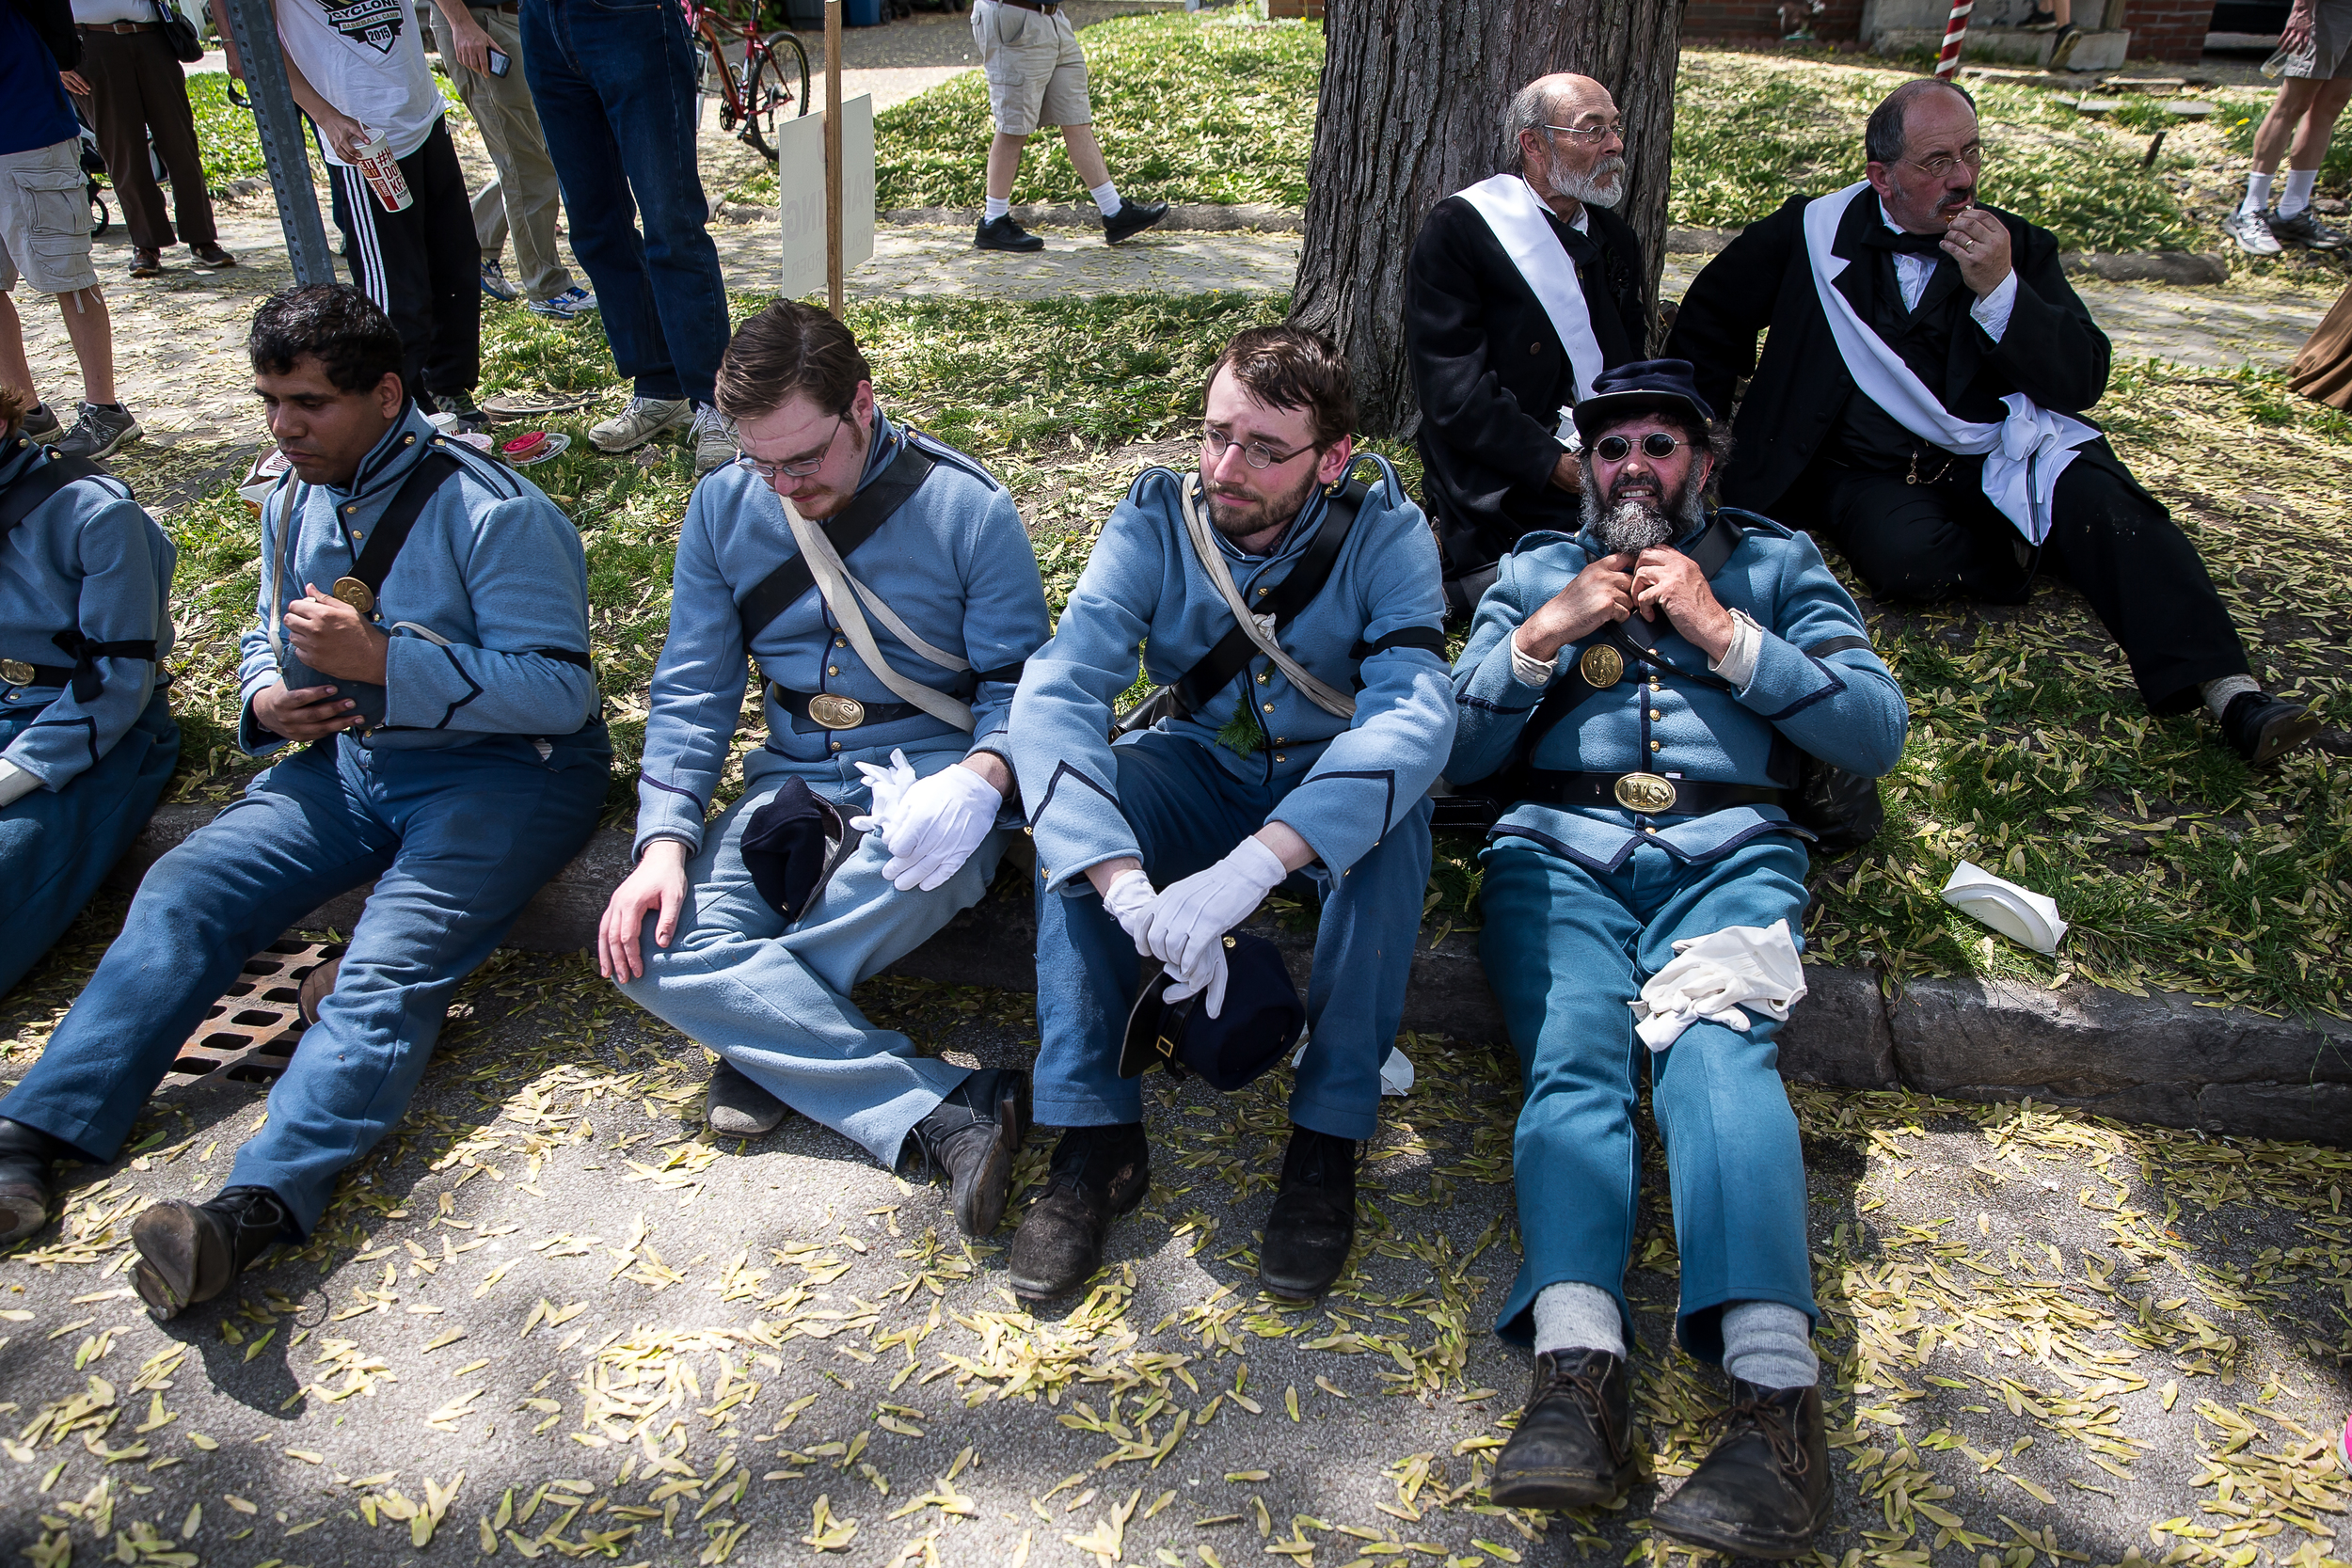 Members of the Veteran Reserve Corps and the pallbearers take a break in the shade as the funeral procession stops for a moment on Fourth Street during the 2015 Lincoln Funeral Re-enactment, Sunday, May 3, 2015, in Springfield, Ill. Justin L. Fowler/The State Journal-Register